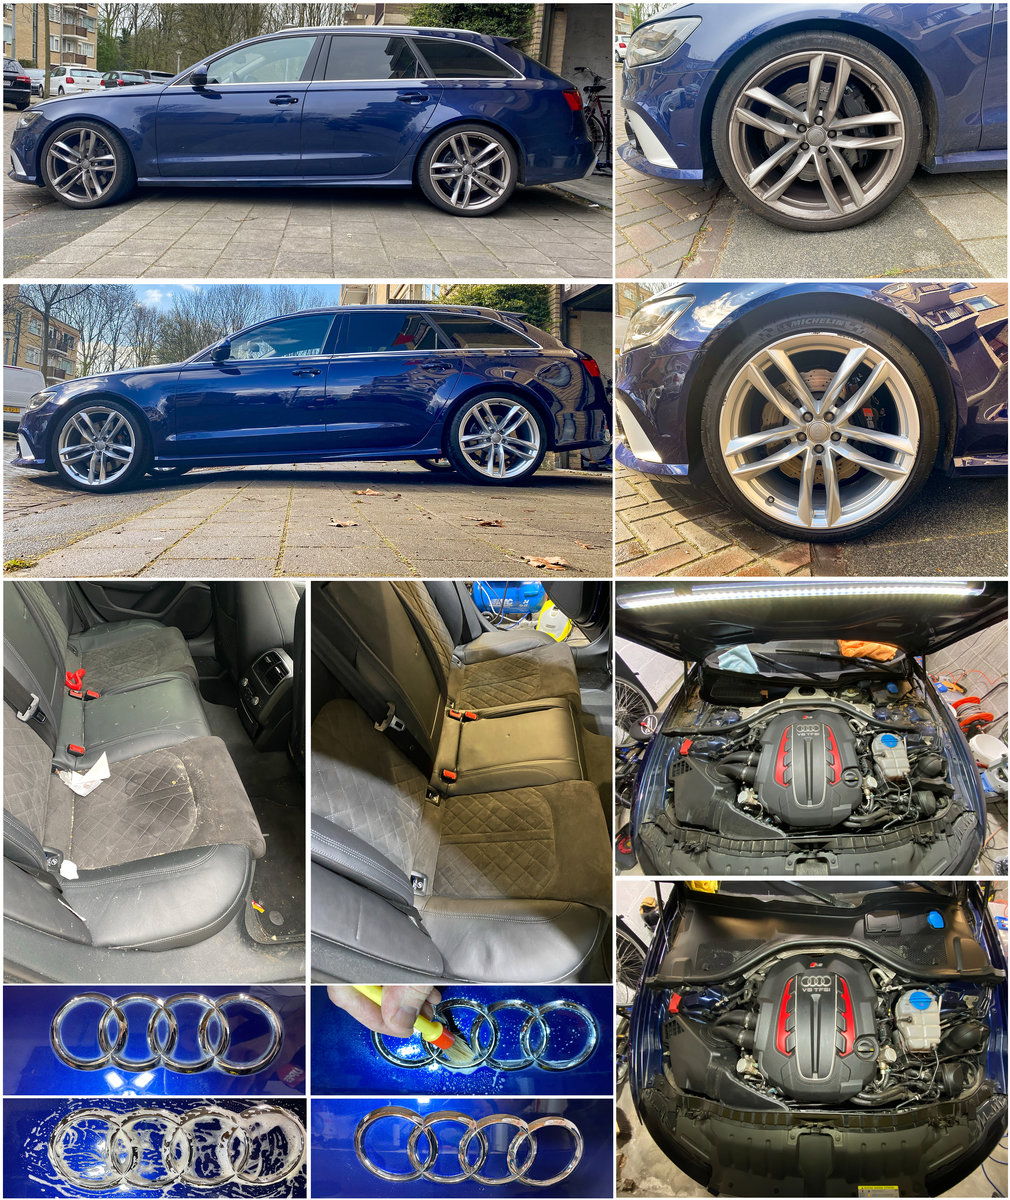 RS6 full detail 1.jpg